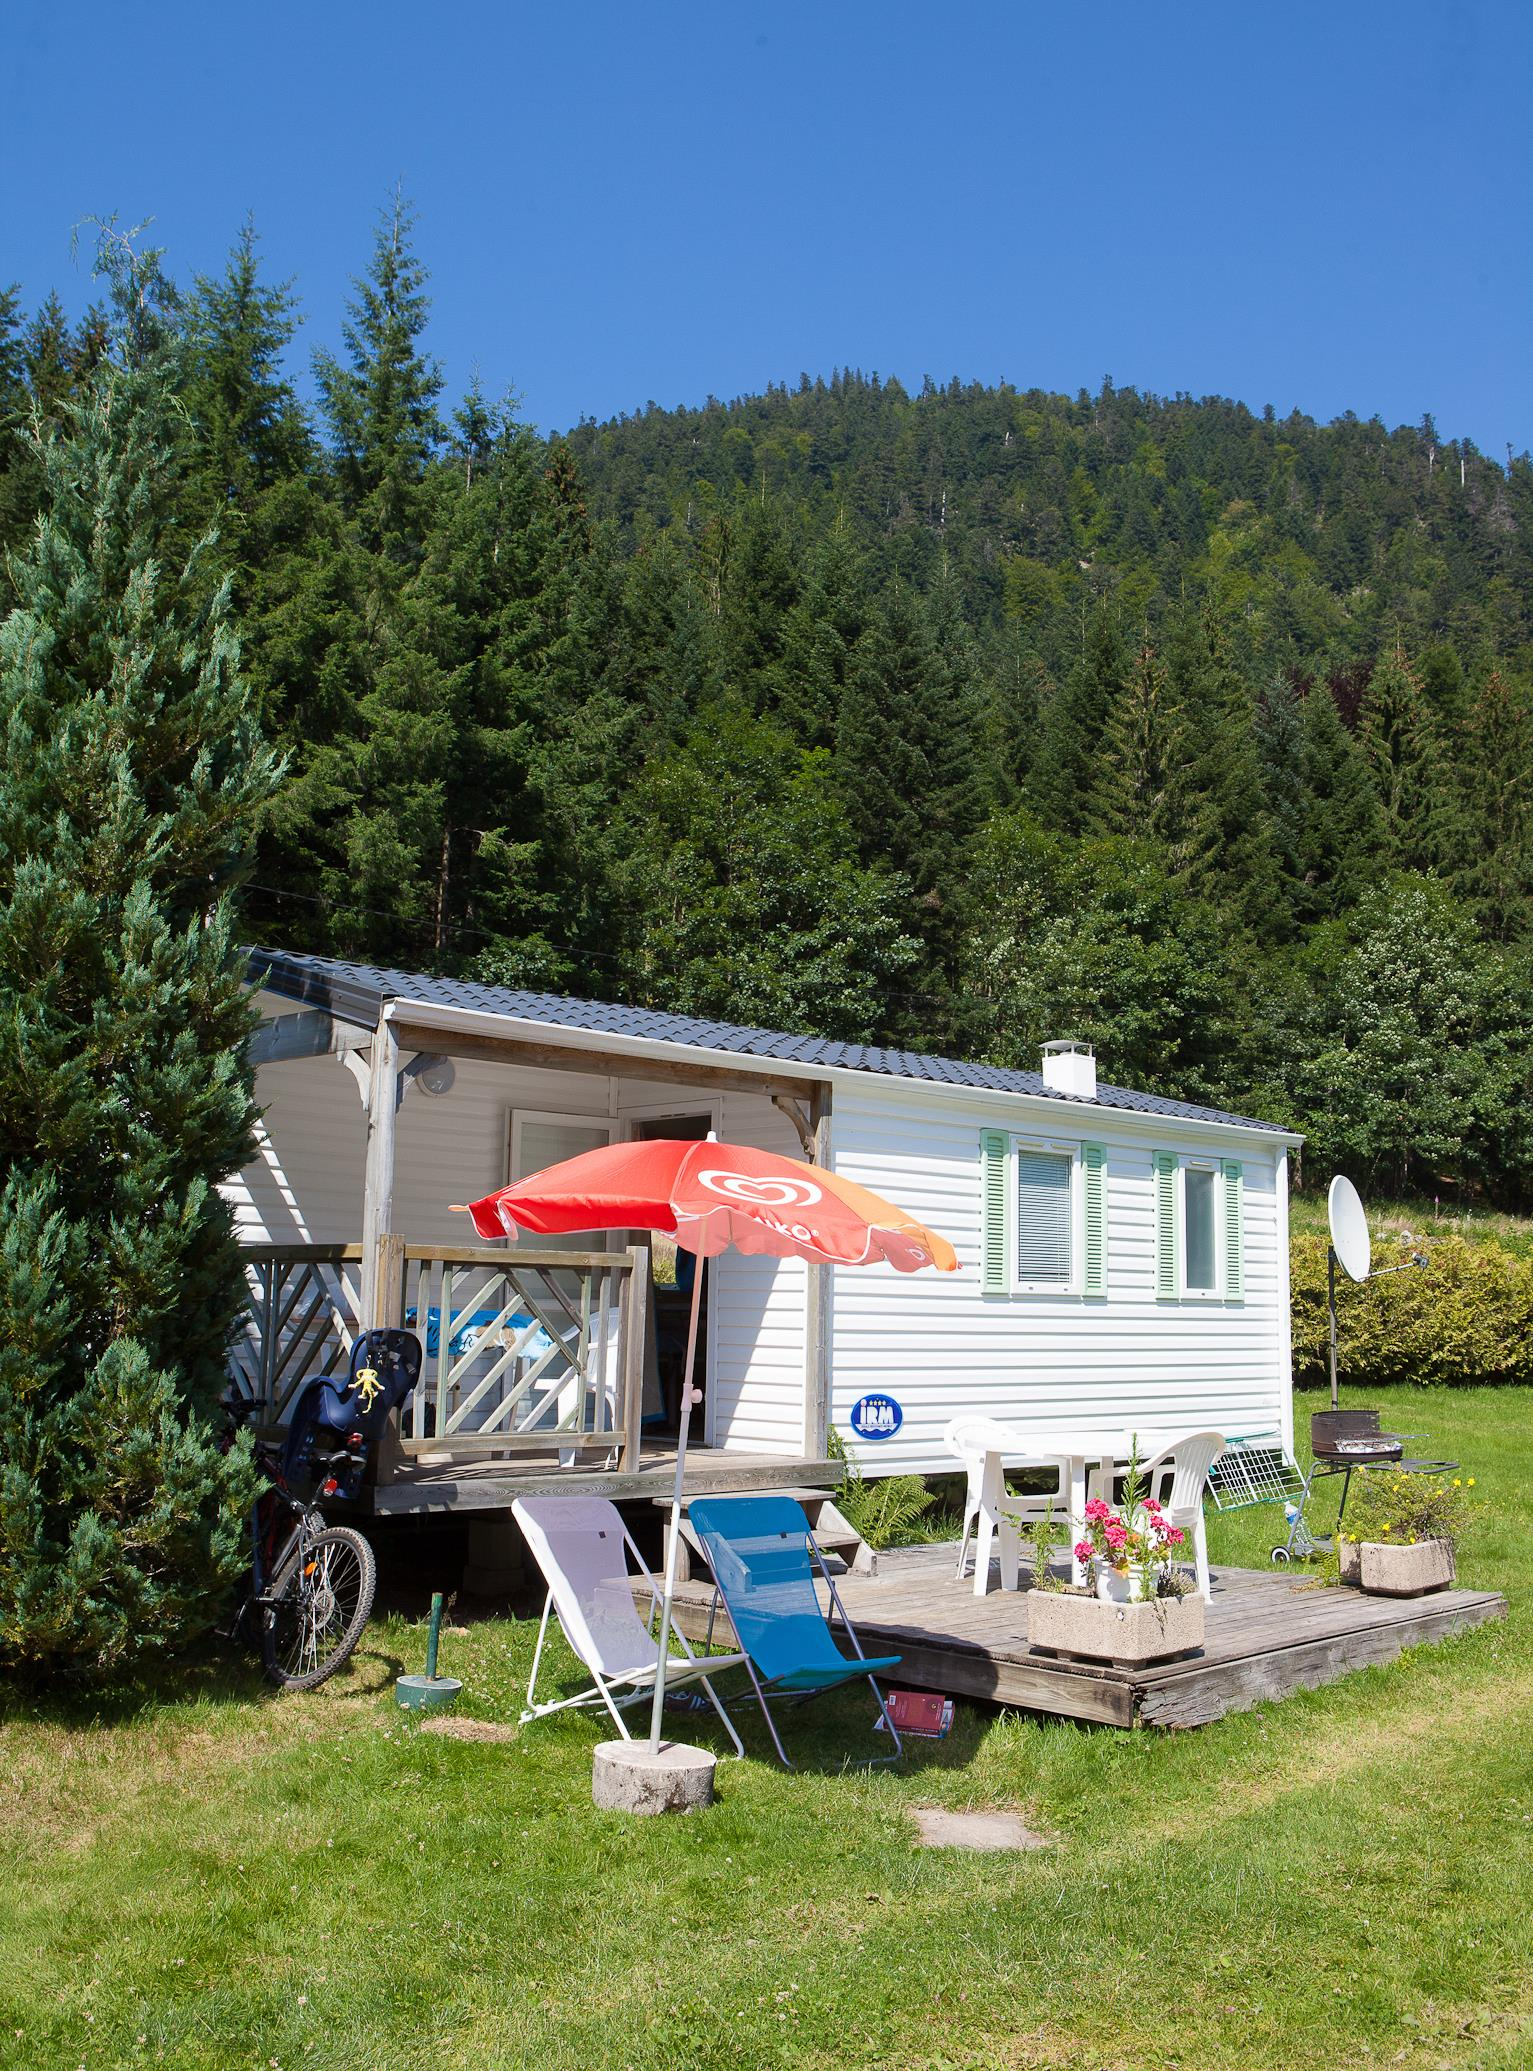 Location - Eco Mobil-Home 24 M² (2 Chambres) + Terrasse Intégrée - 2003 - Flower Camping Verte Vallee